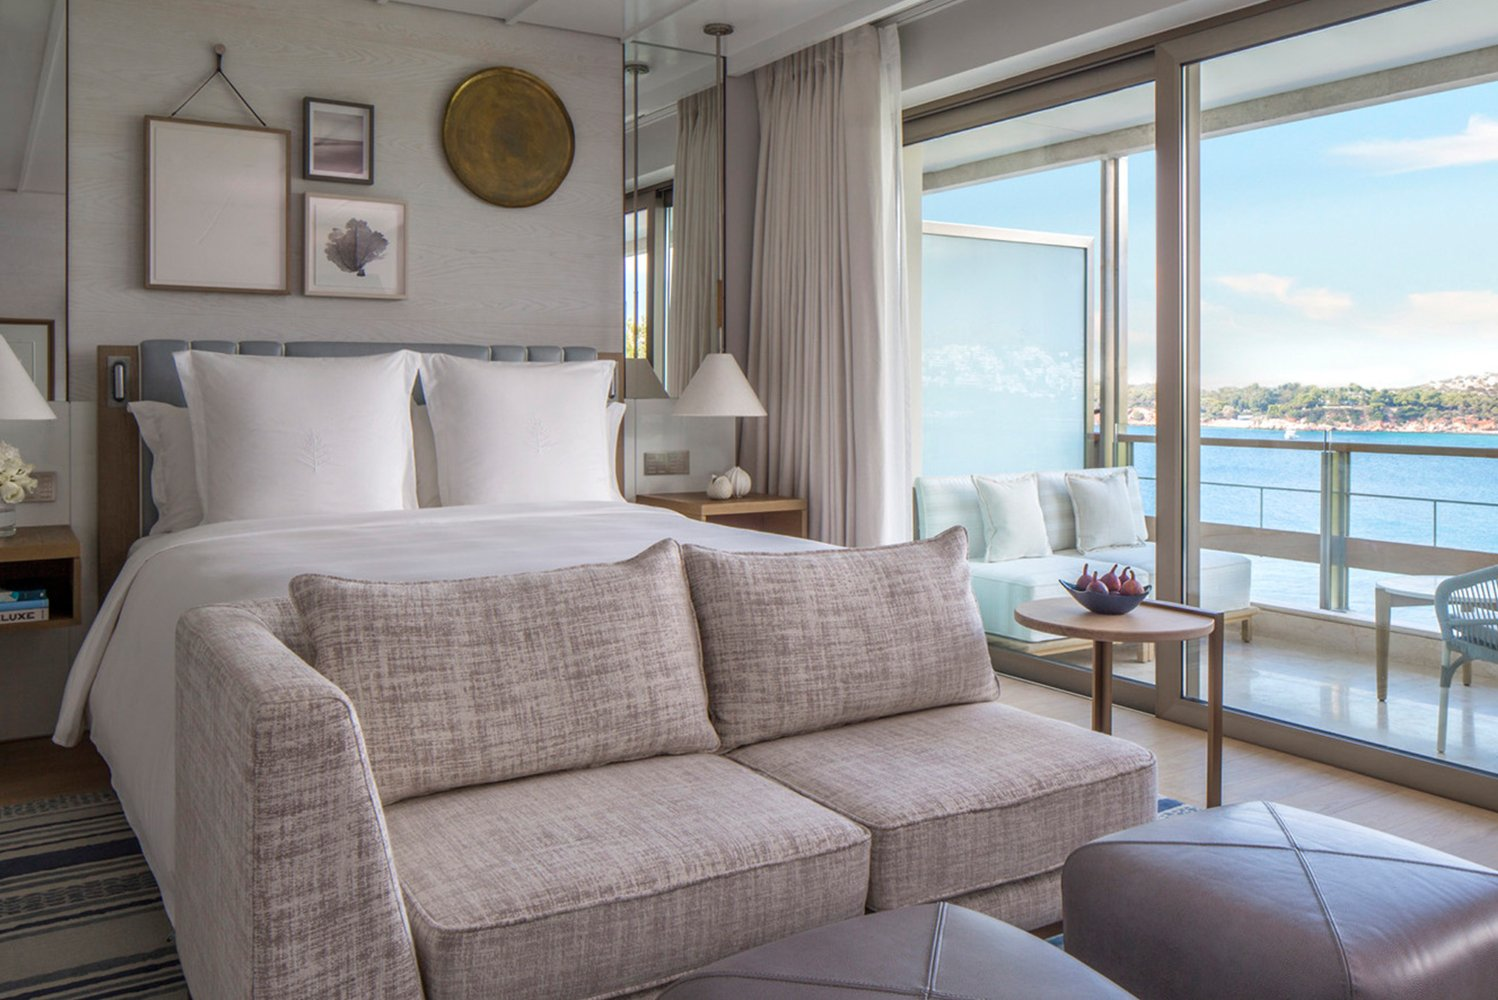 Four Seasons Astir Palace Hotel Athens is scheduled to open in March.